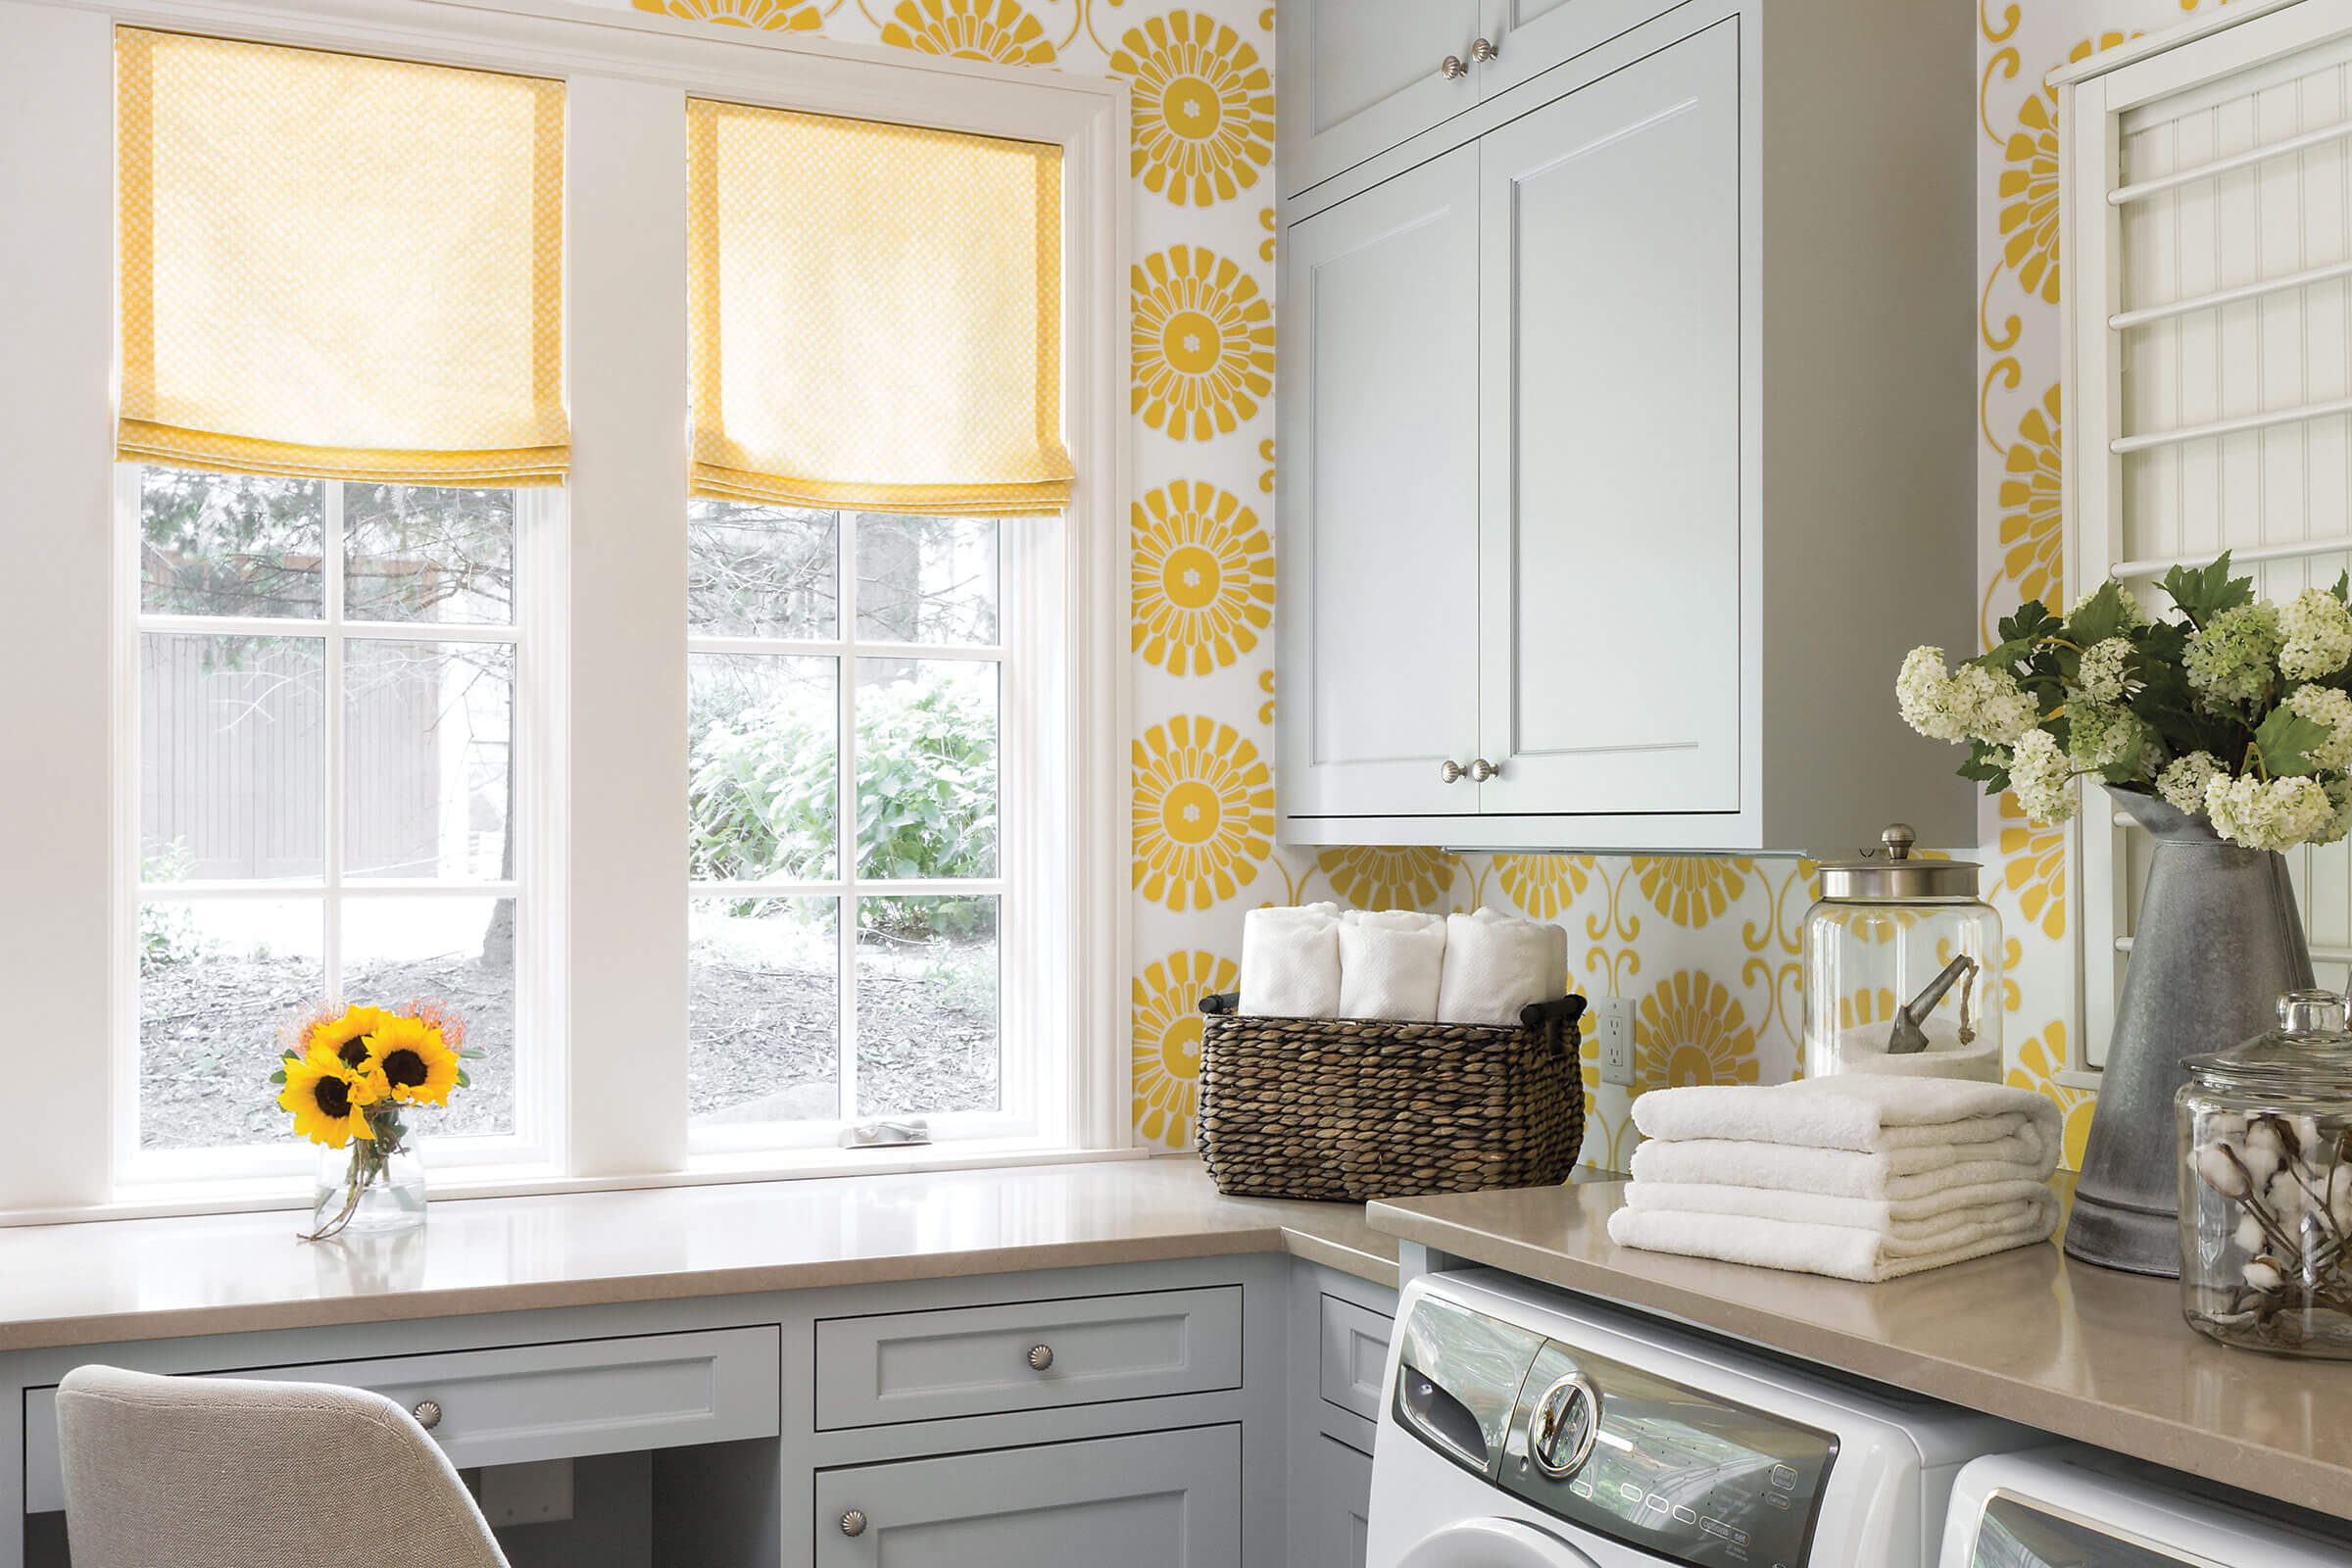 White And Yellow Laundry Room With Marvin Elevate Casement Windows